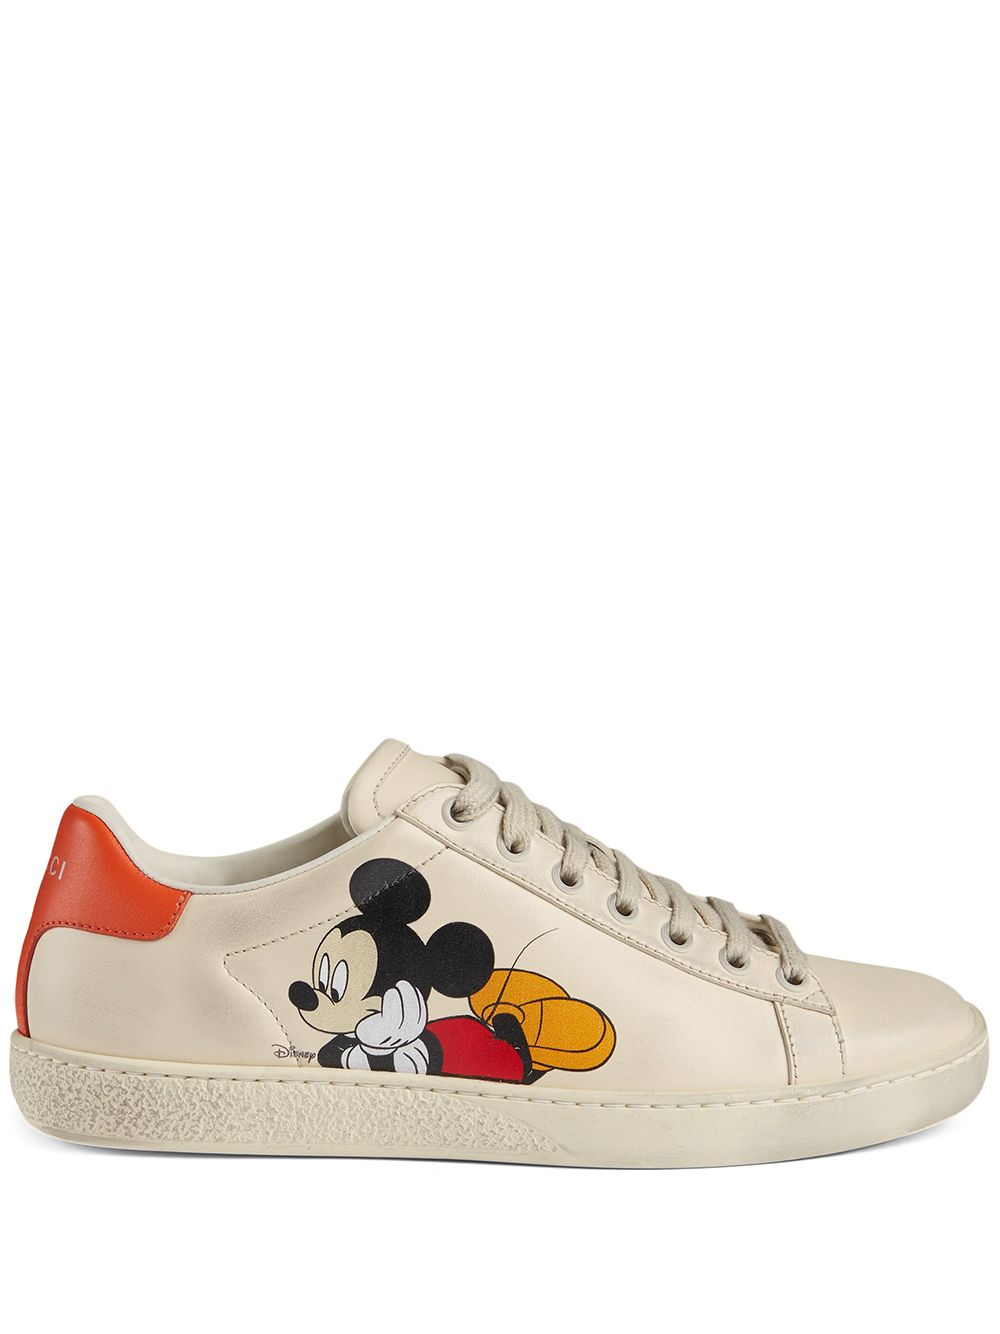 Gucci x Disney Mickey Mouse sneakers - Weiß von Gucci